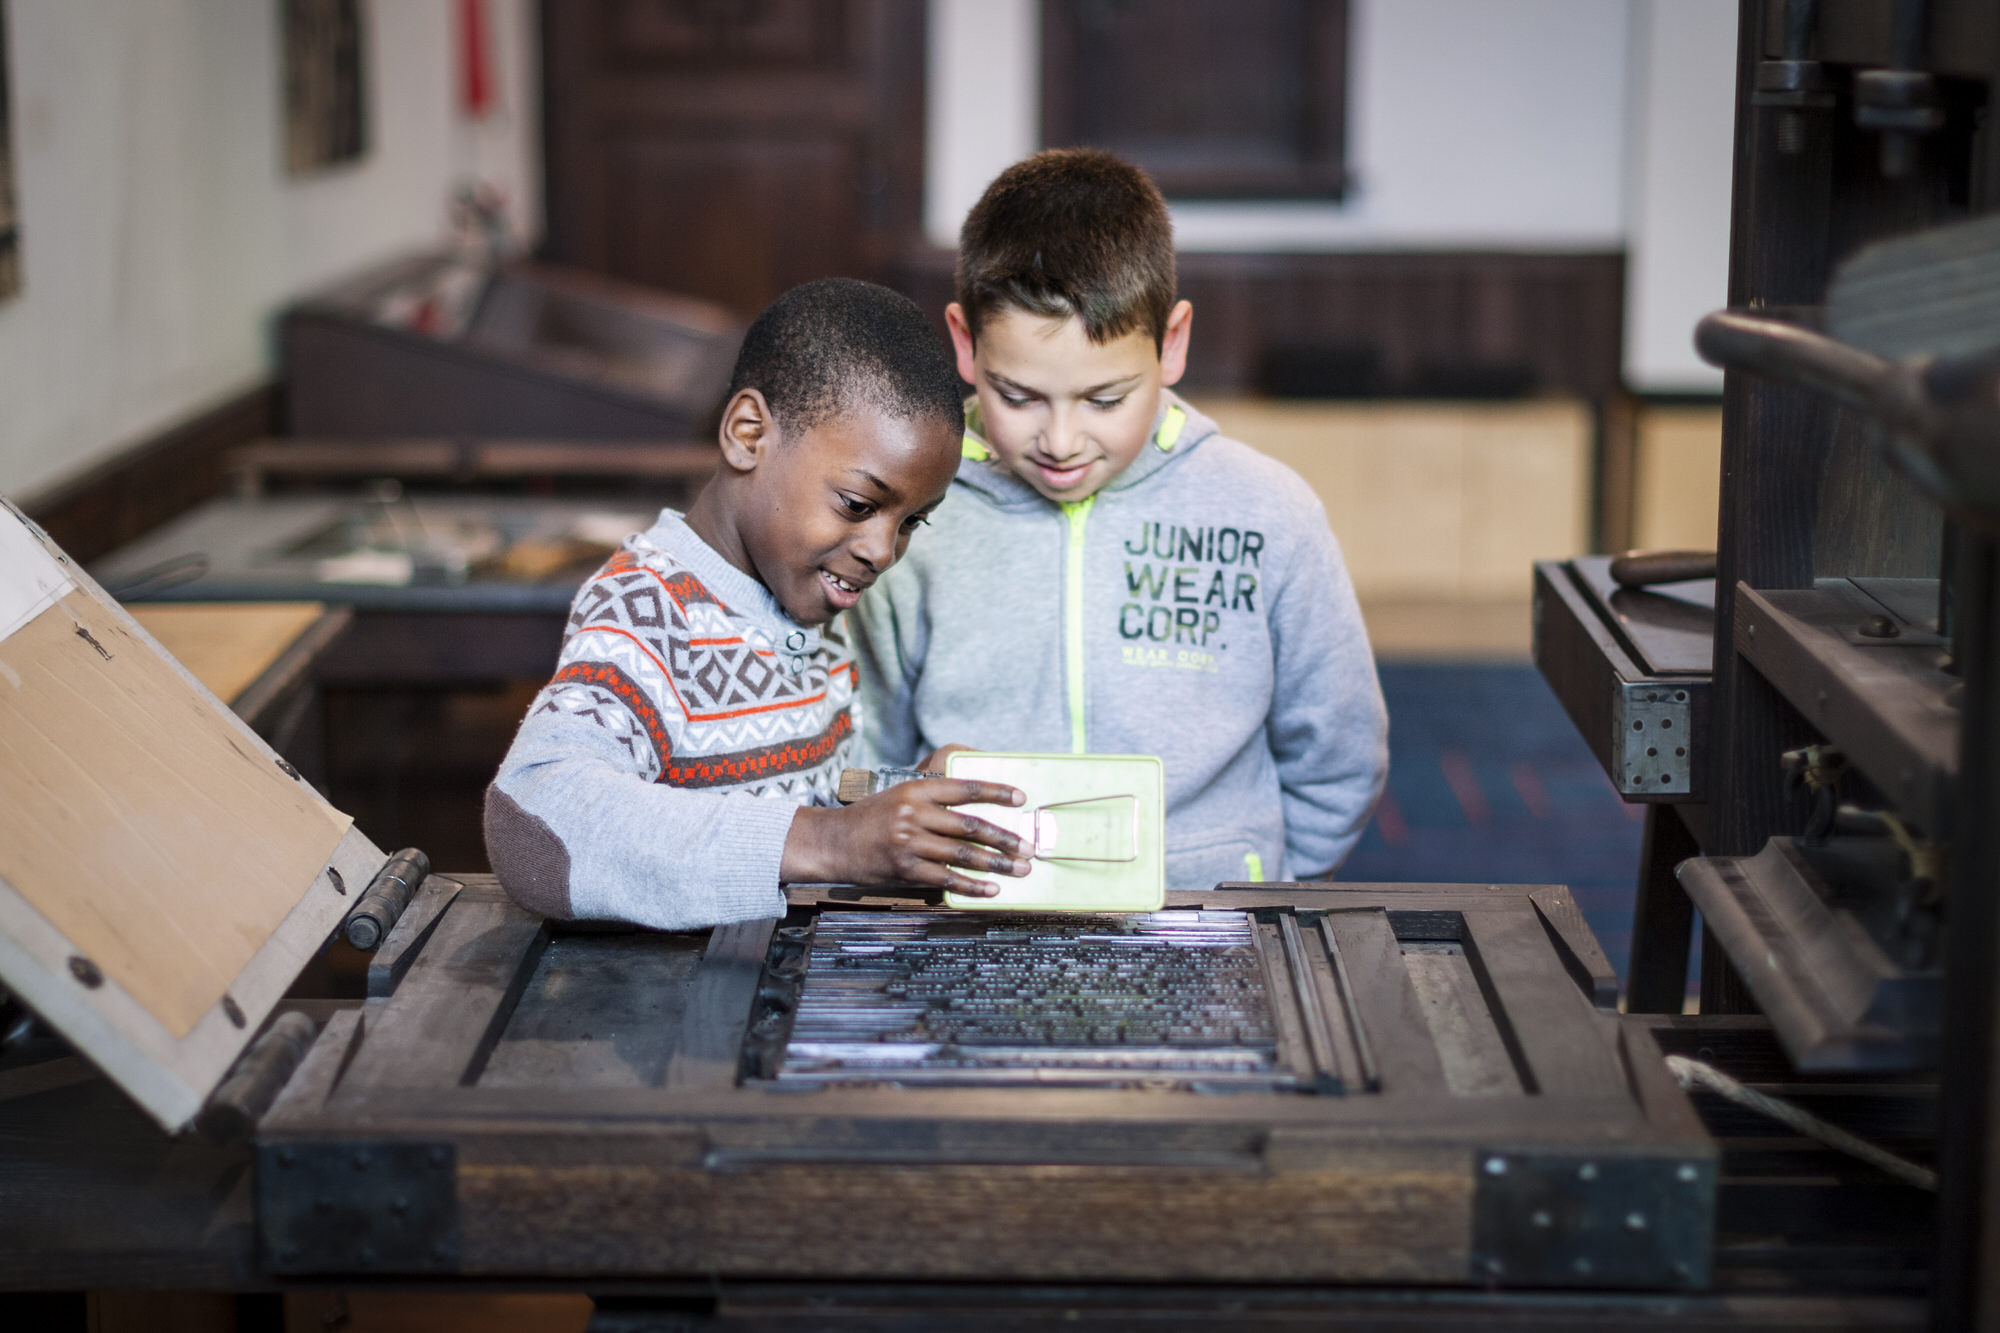 Workshop: Master printer – schools